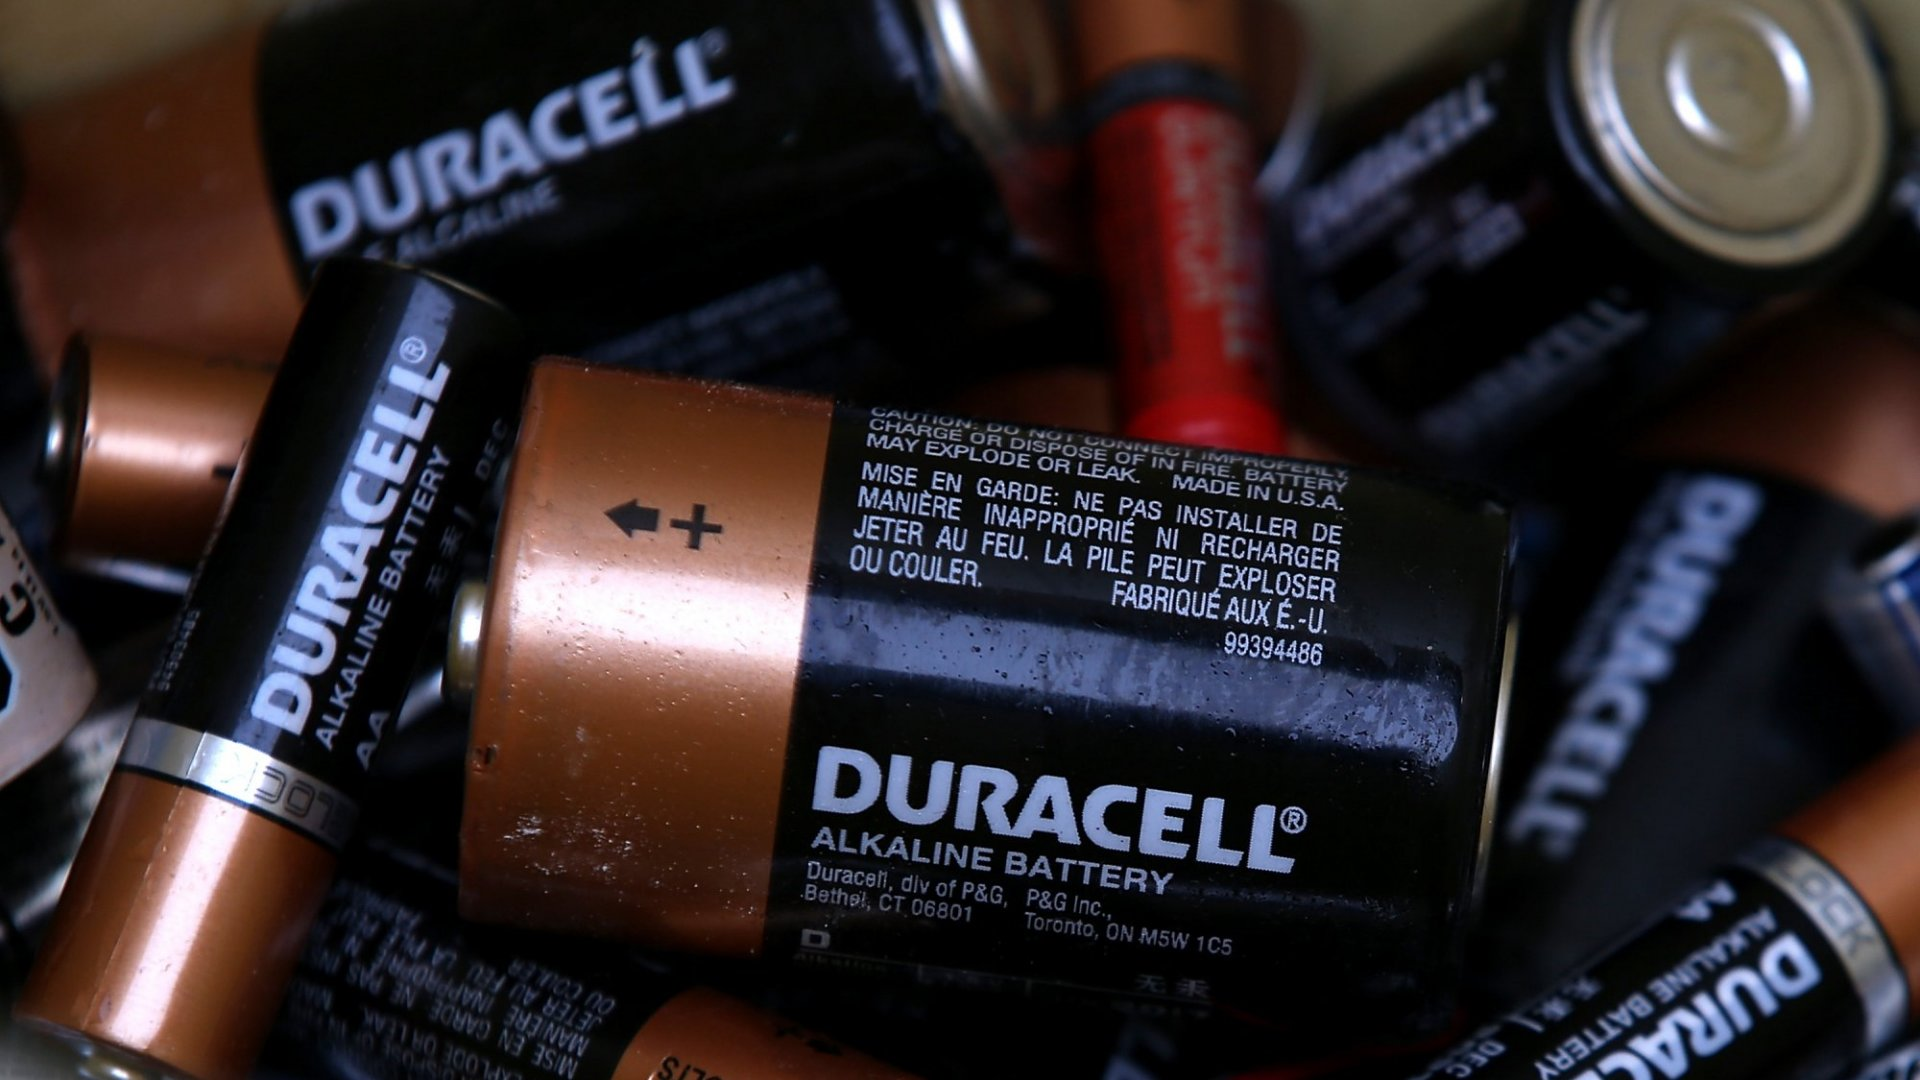 Duracell's Edgy Super Bowl Tweet Just Reinforced SomeMajor Marketing Lessons